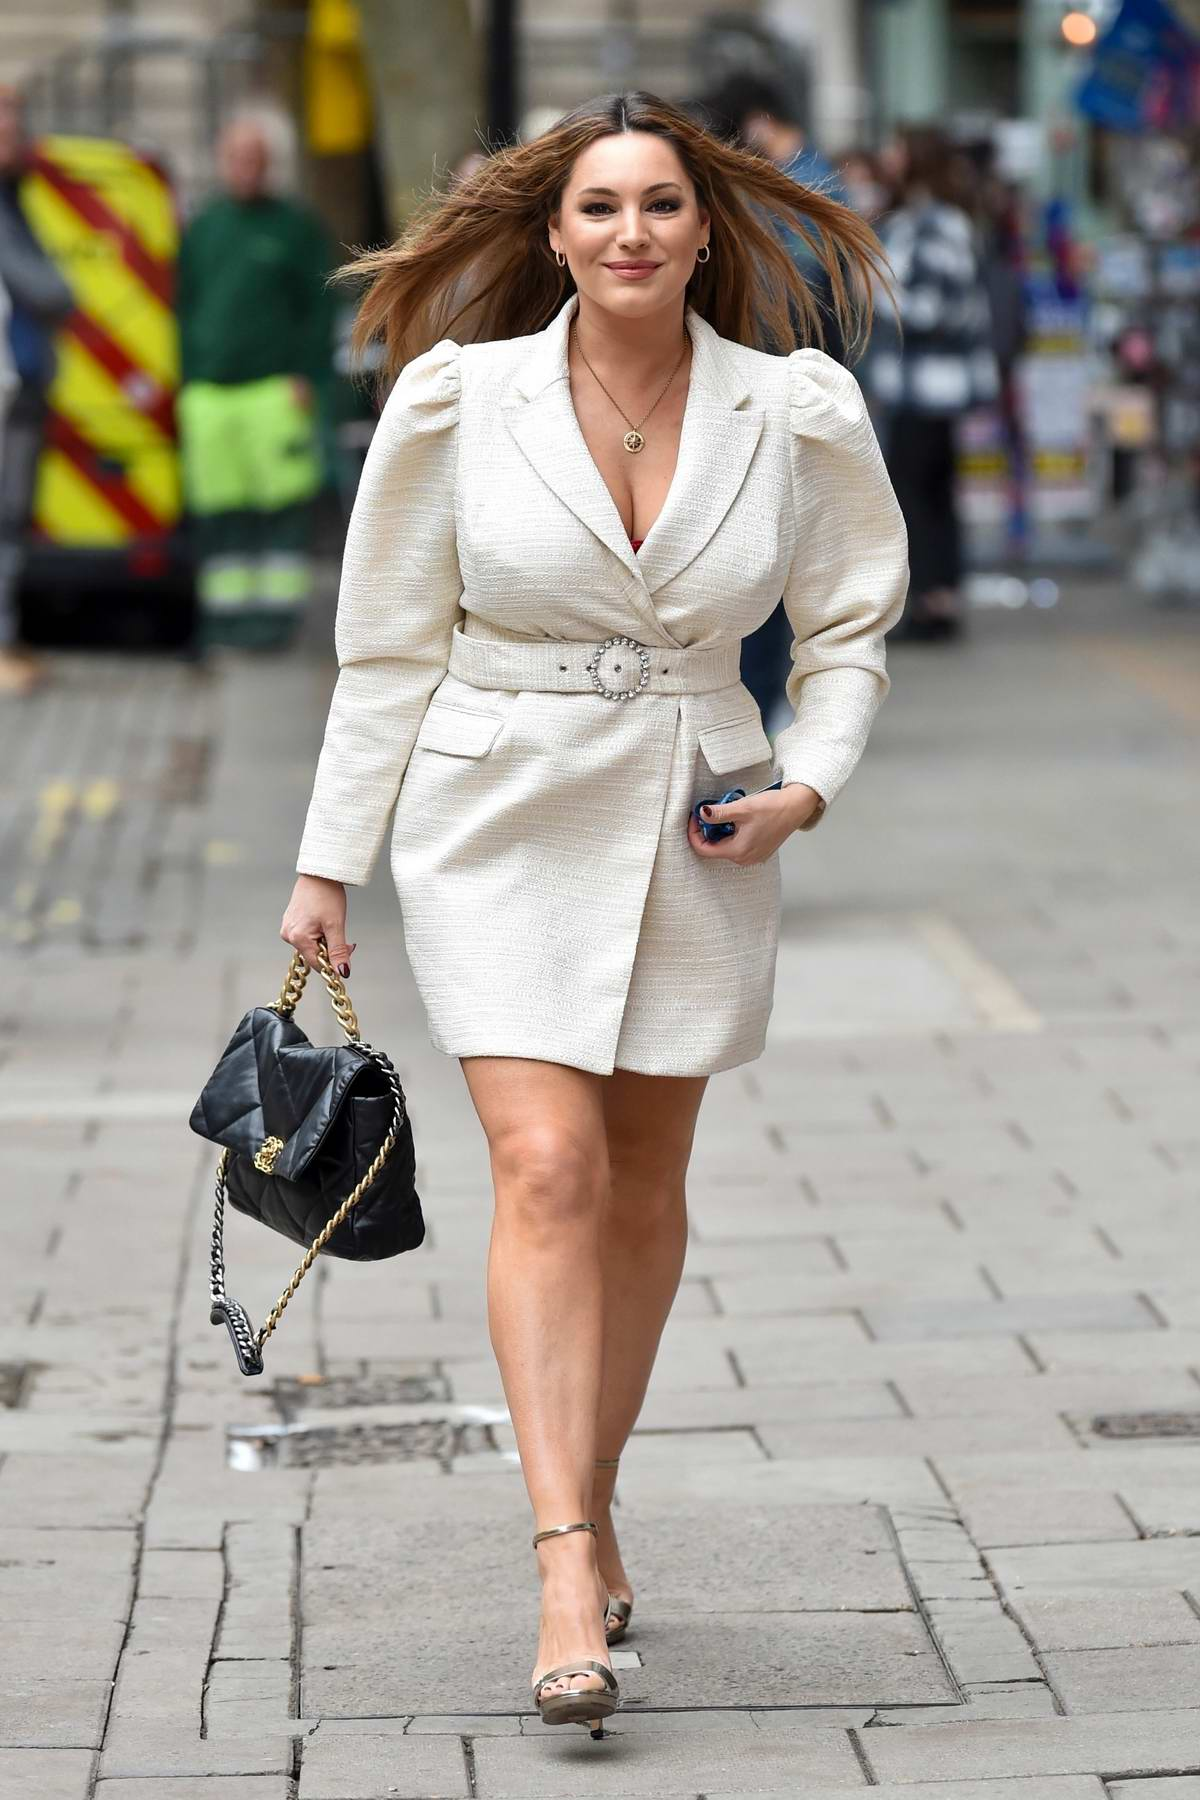 Kelly Brook looks stylish in a cream blazer dress as she arrives at the Global studios in London, UK